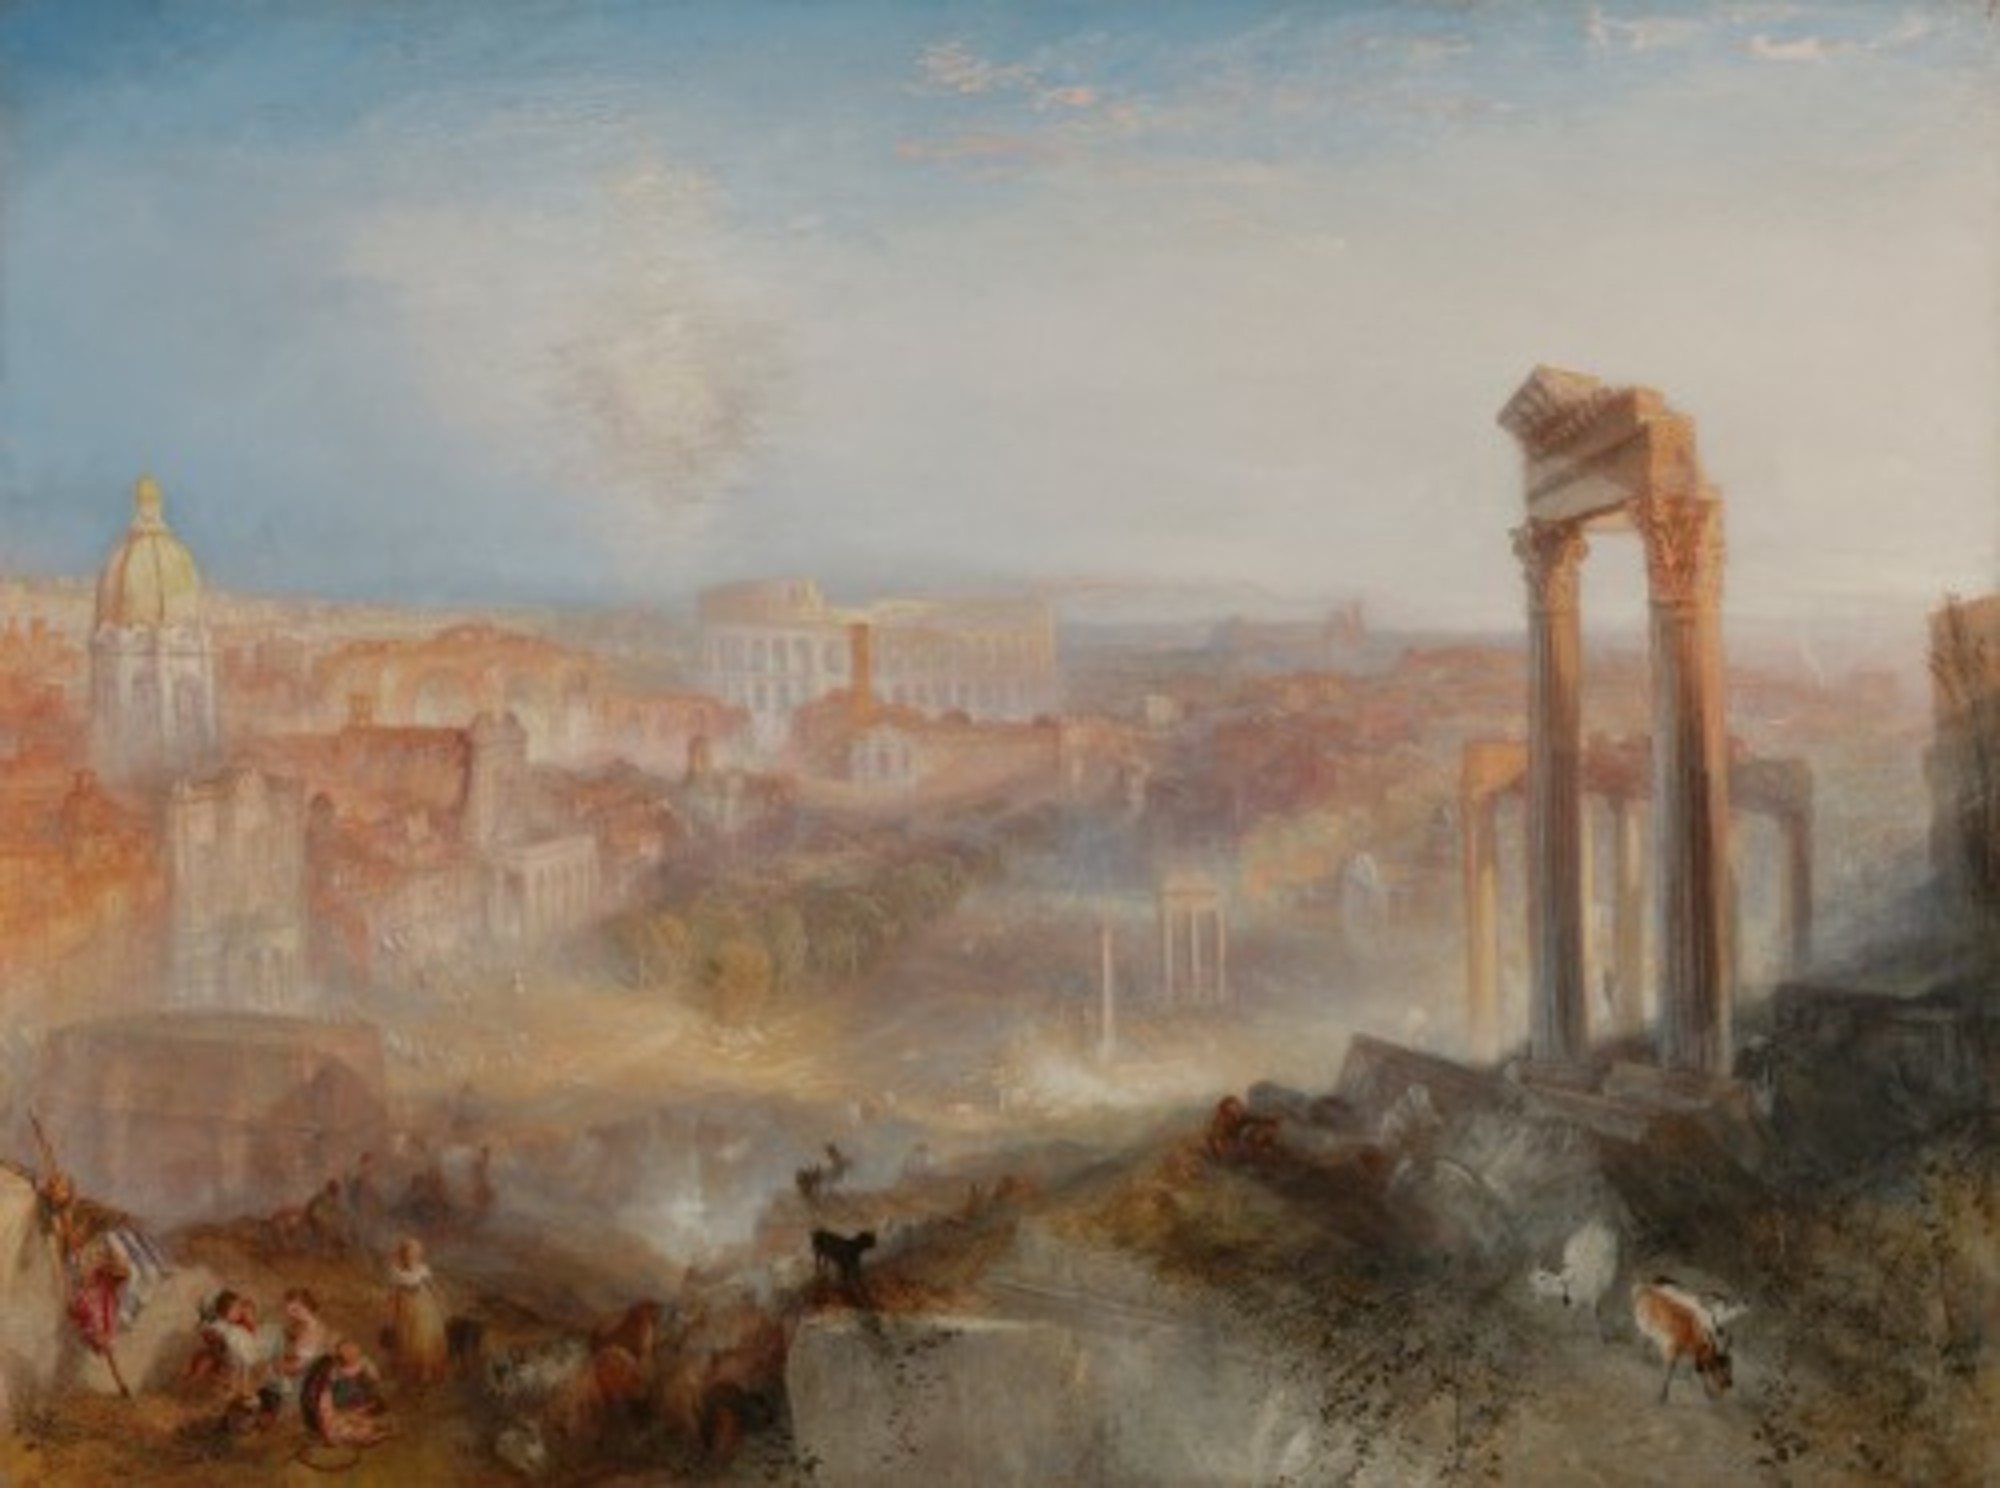 Joseph_Mallord_William_Turner_British_-_Modern_Rome-Campo_Vaccino_-_Google_Art_Project.jpg